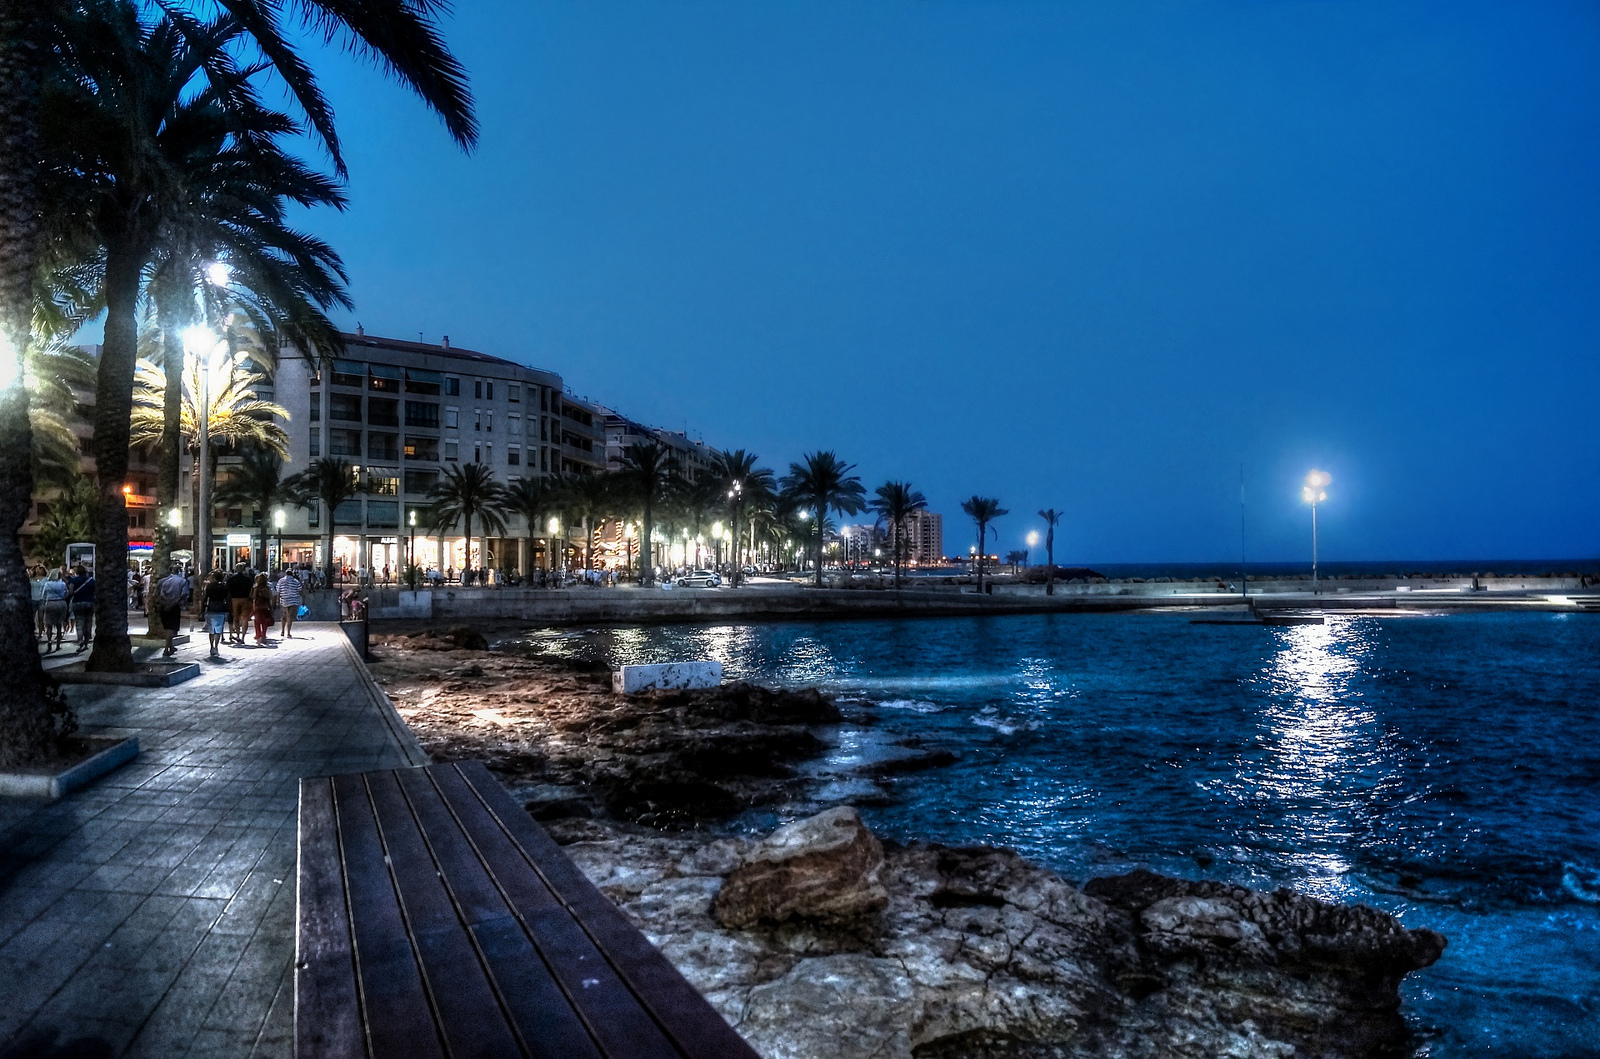 ITSH Property Torrevieja by night 23